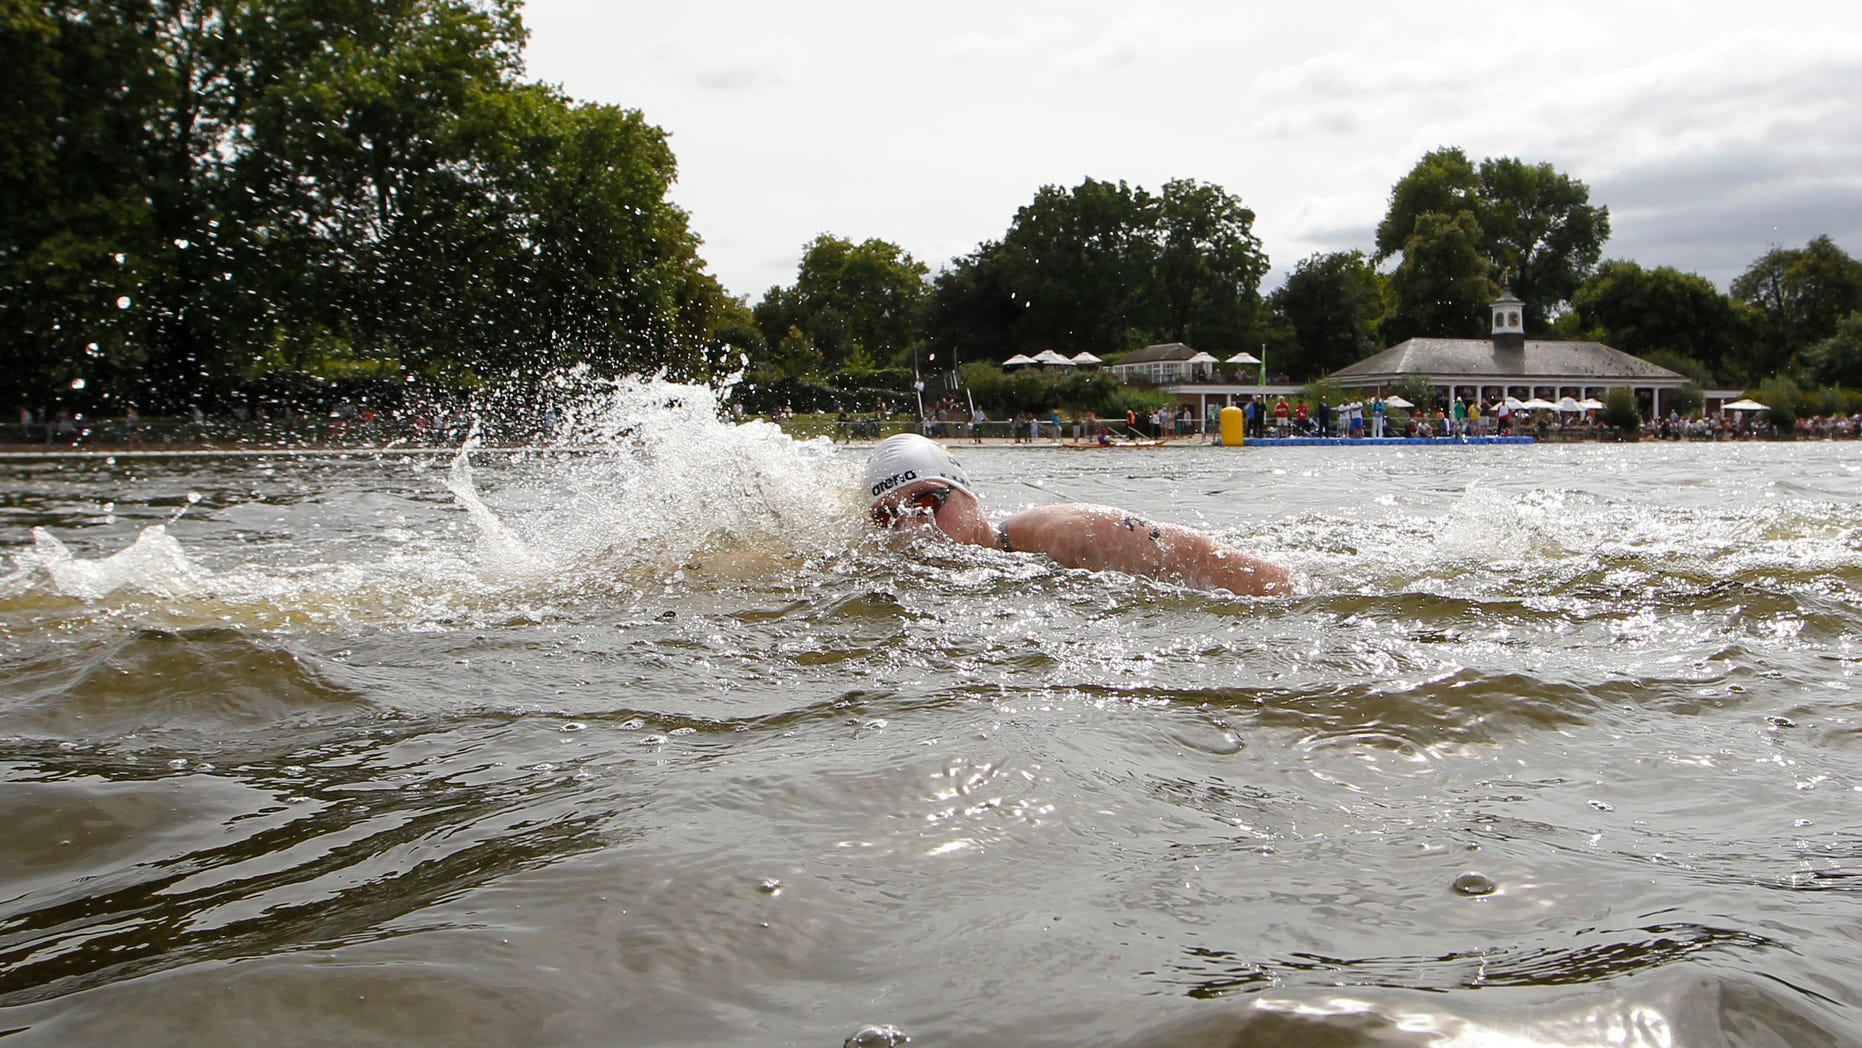 Aug. 13, 2011: In this file photo, Germany's Thomas Lurz races during the 10-kilometer marathon swimming International Olympic test event at Hyde Park's Serpentine lake in London.